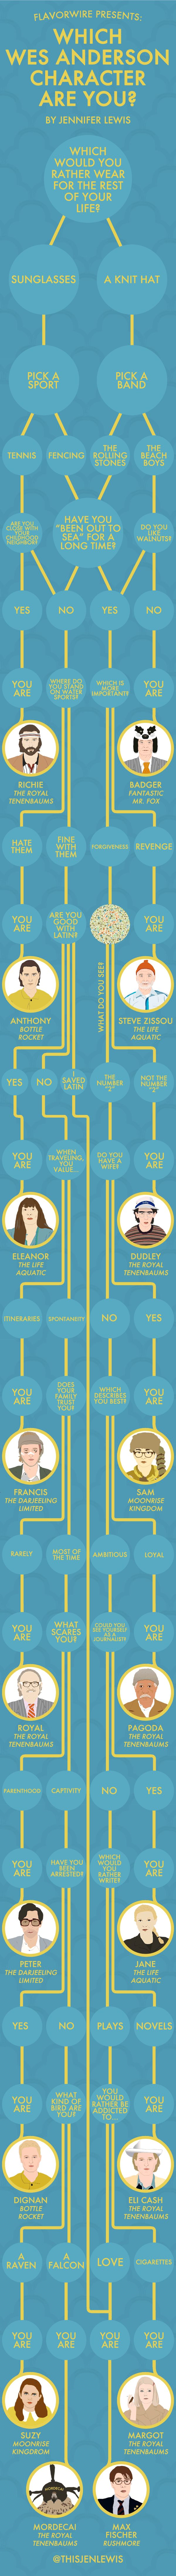 Exclusive Infographic: Which Wes Anderson Character Are You? R: Suzy, Moonrise Kingdom.